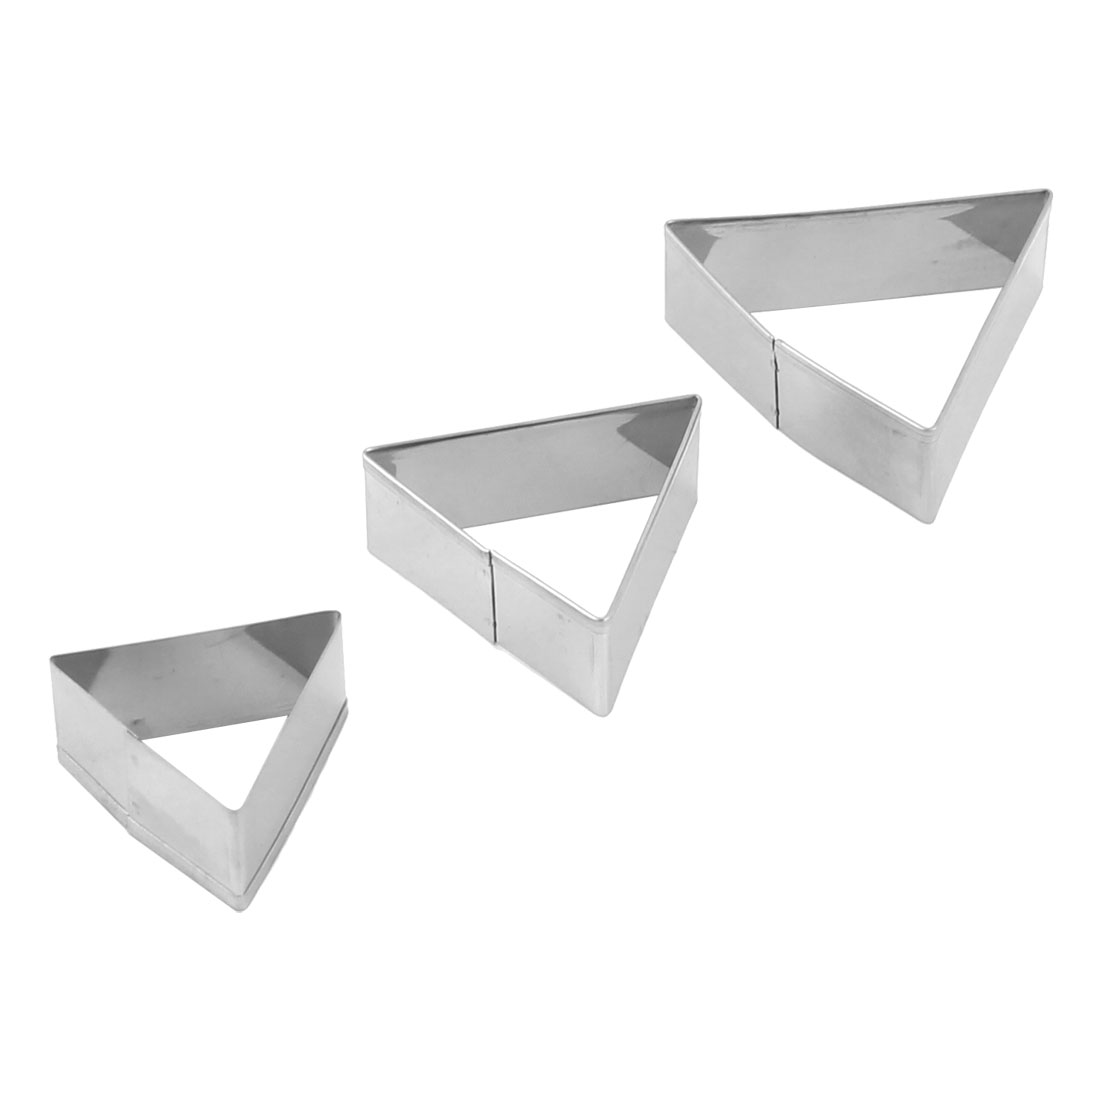 Home Kitchen Metal Triangle Shaped Cake Biscuit Making Tool Mold Mould 3 in 1